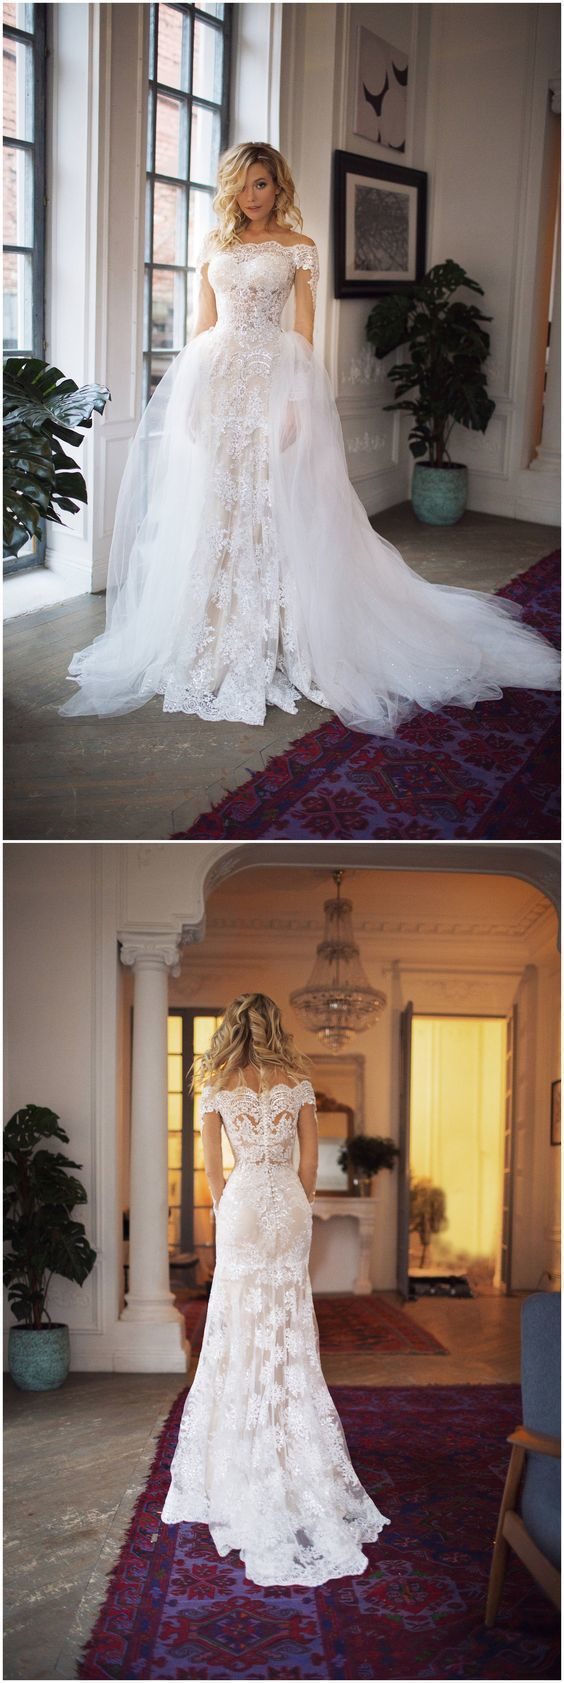 Off Shoulder Lace Elegant Formal Beach Fall Wedding Dress, Bridal Gowns,WD0341